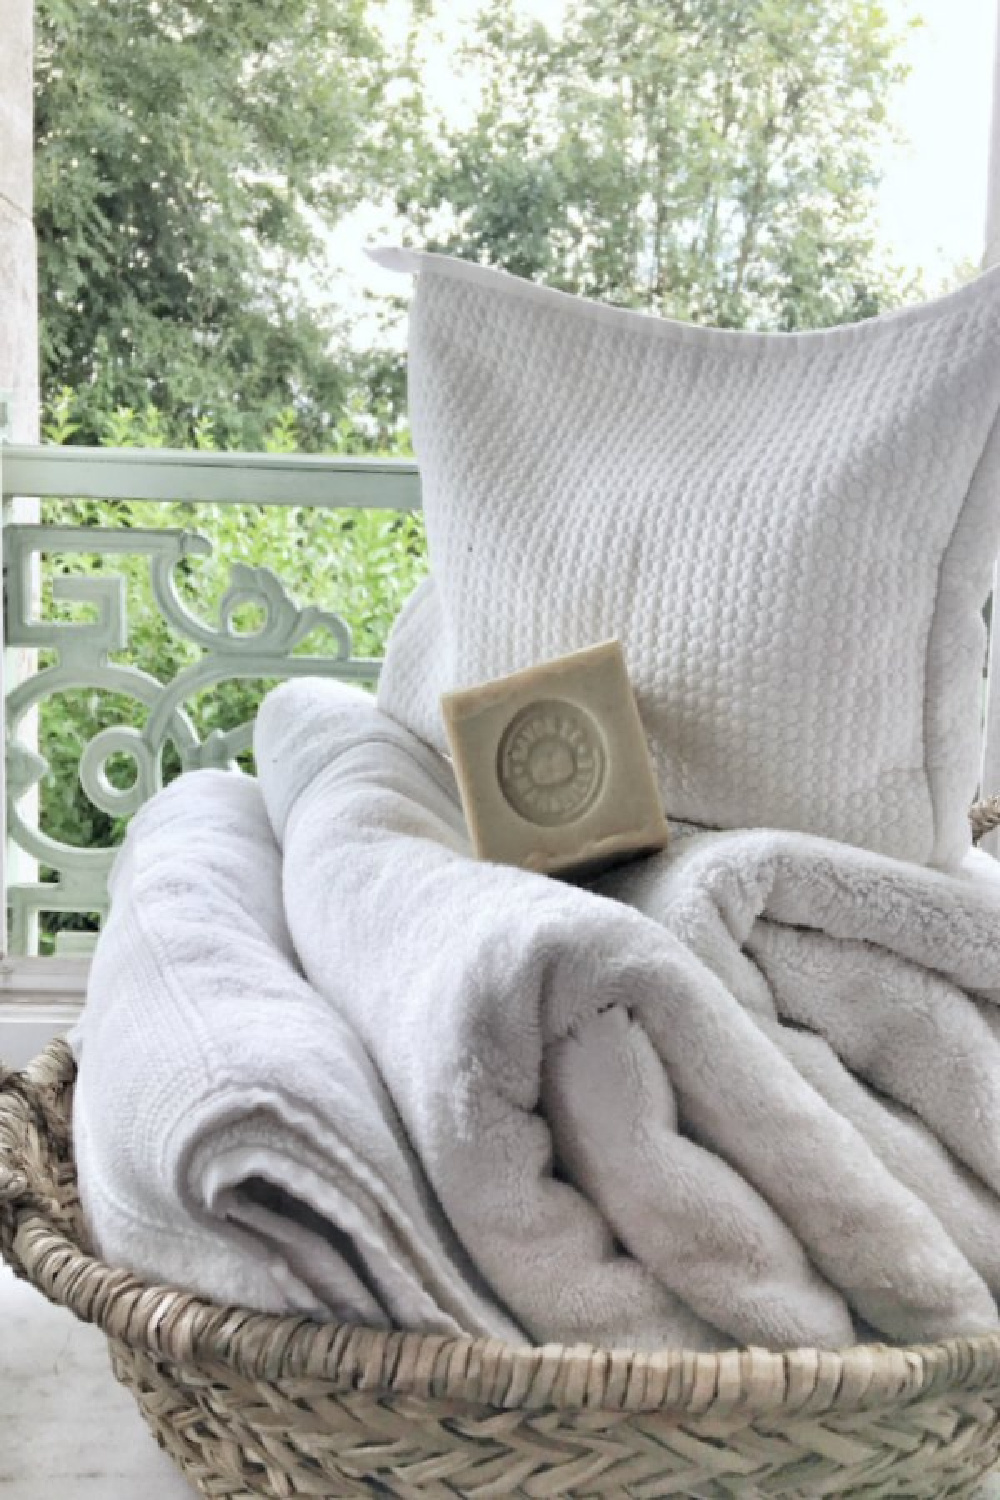 French market basket of towels and soap in a romantic French farmhouse bathroom by Vivi et Margot. #frenchfarmhouse #bathroomdecor